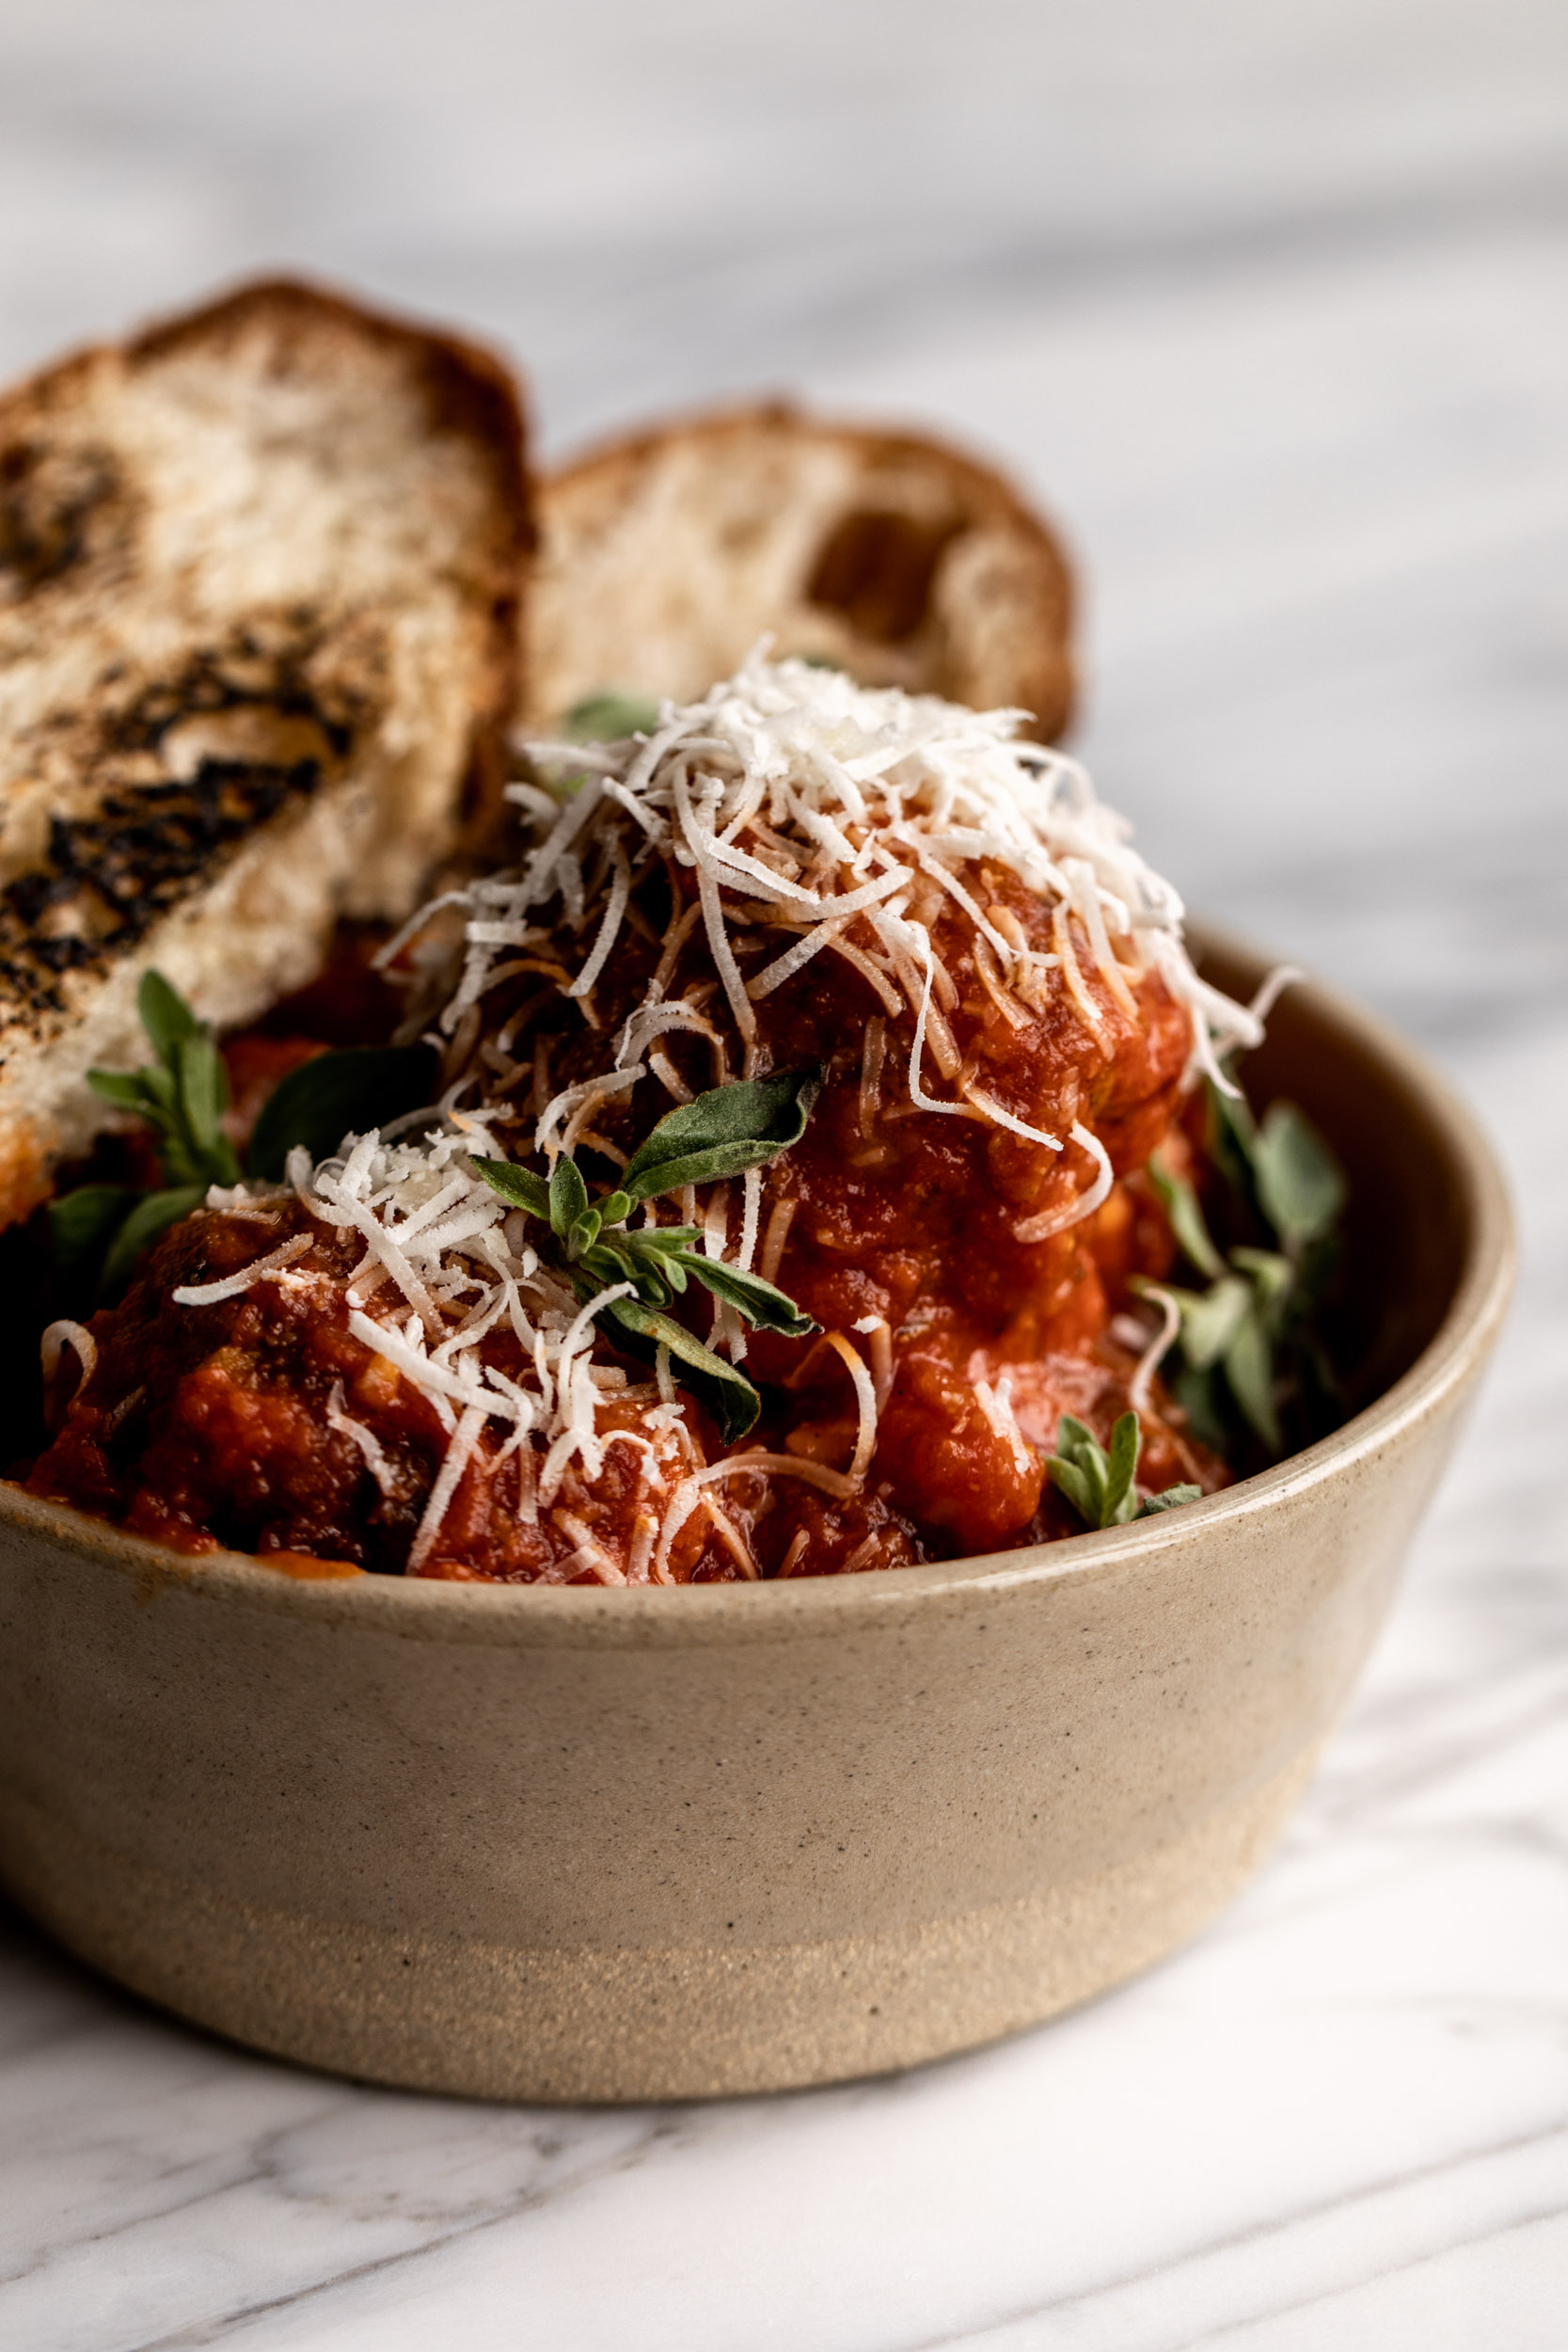 This Italian meatball recipe is made with a combination of 3 types of meat: beef, pork & prosciutto which adds flavor and keeps them moist